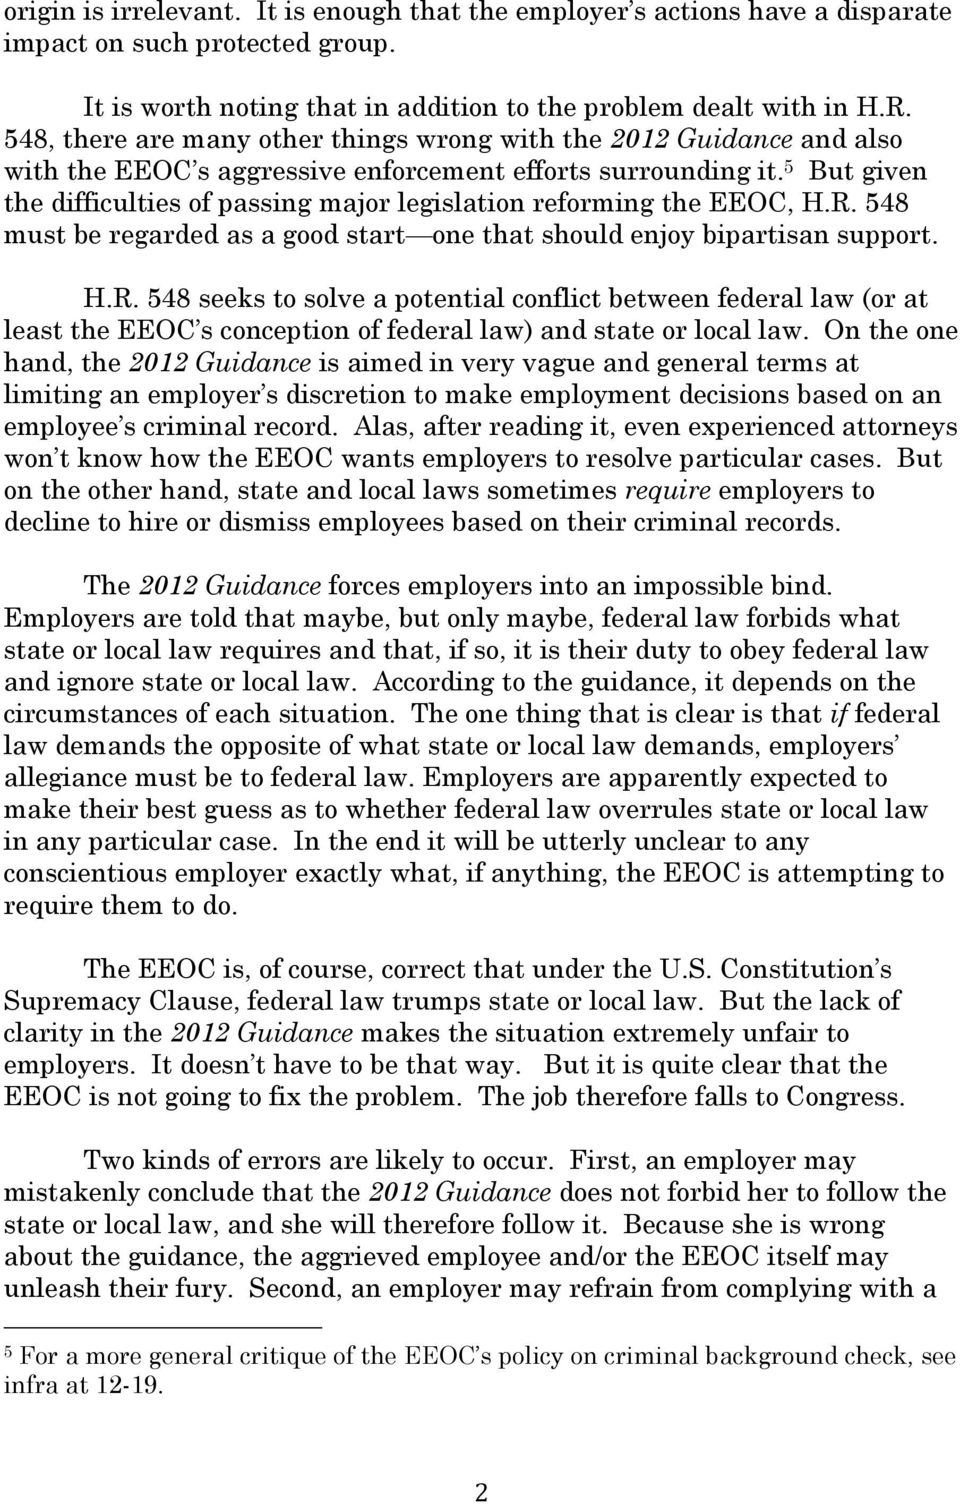 5 But given the difficulties of passing major legislation reforming the EEOC, H.R.